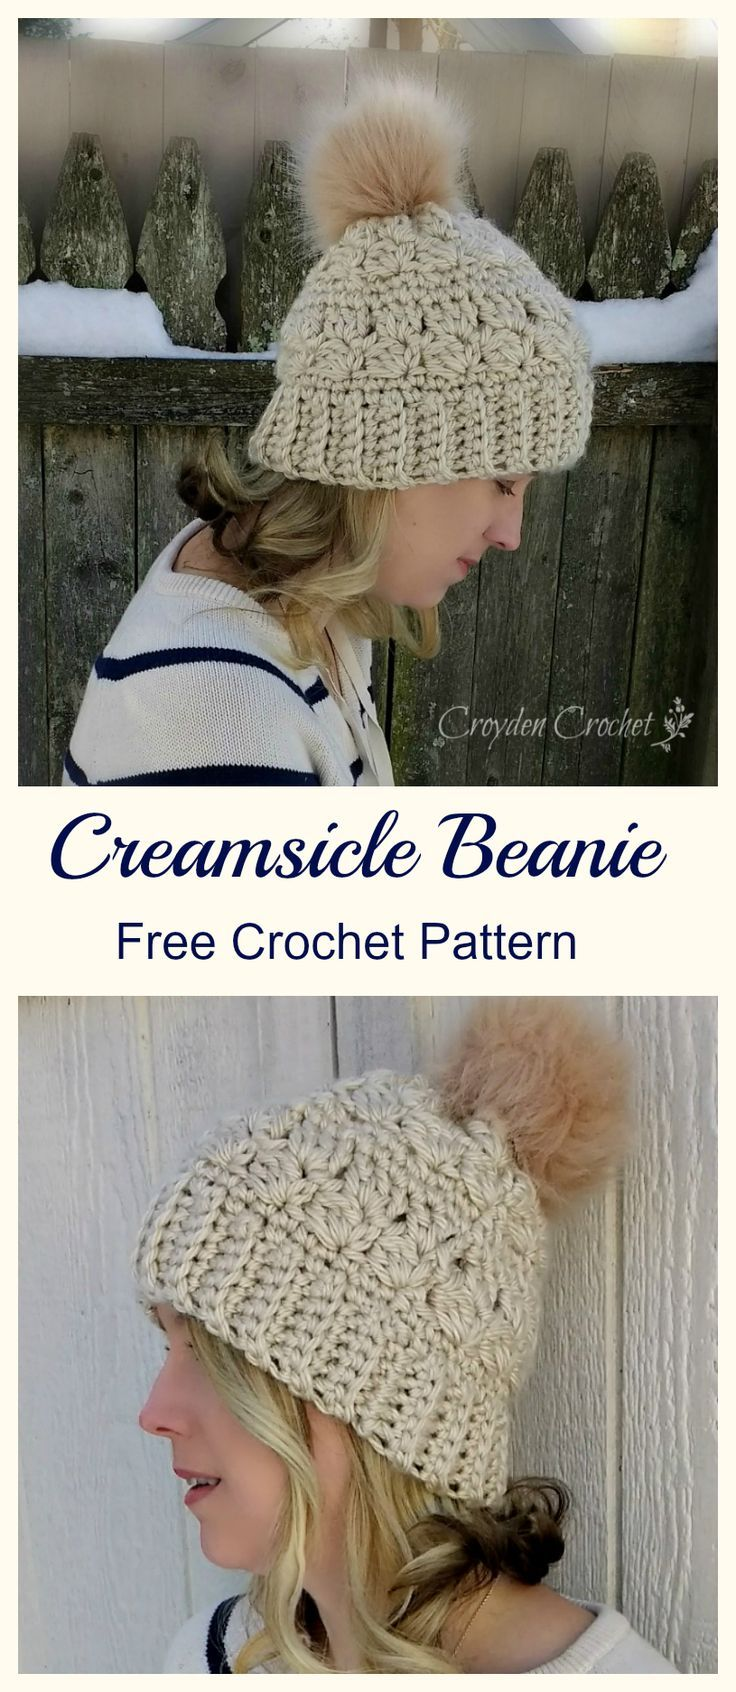 Creamsicle Beanie | Pinterest | Free pattern, Cozy and Crochet